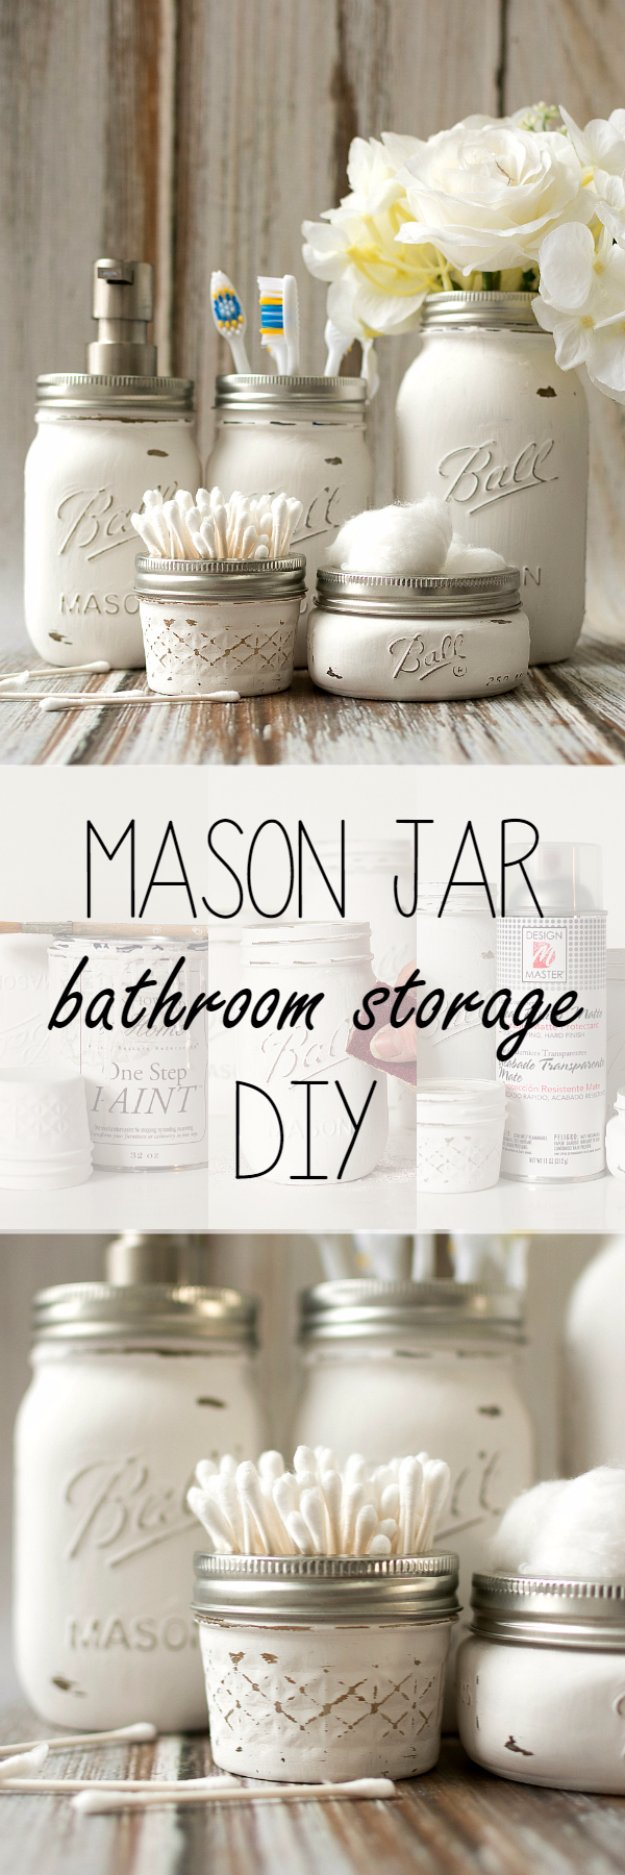 31 brilliant diy decor ideas for your bathroom diy joy for Diy bathroom ideas on a budget